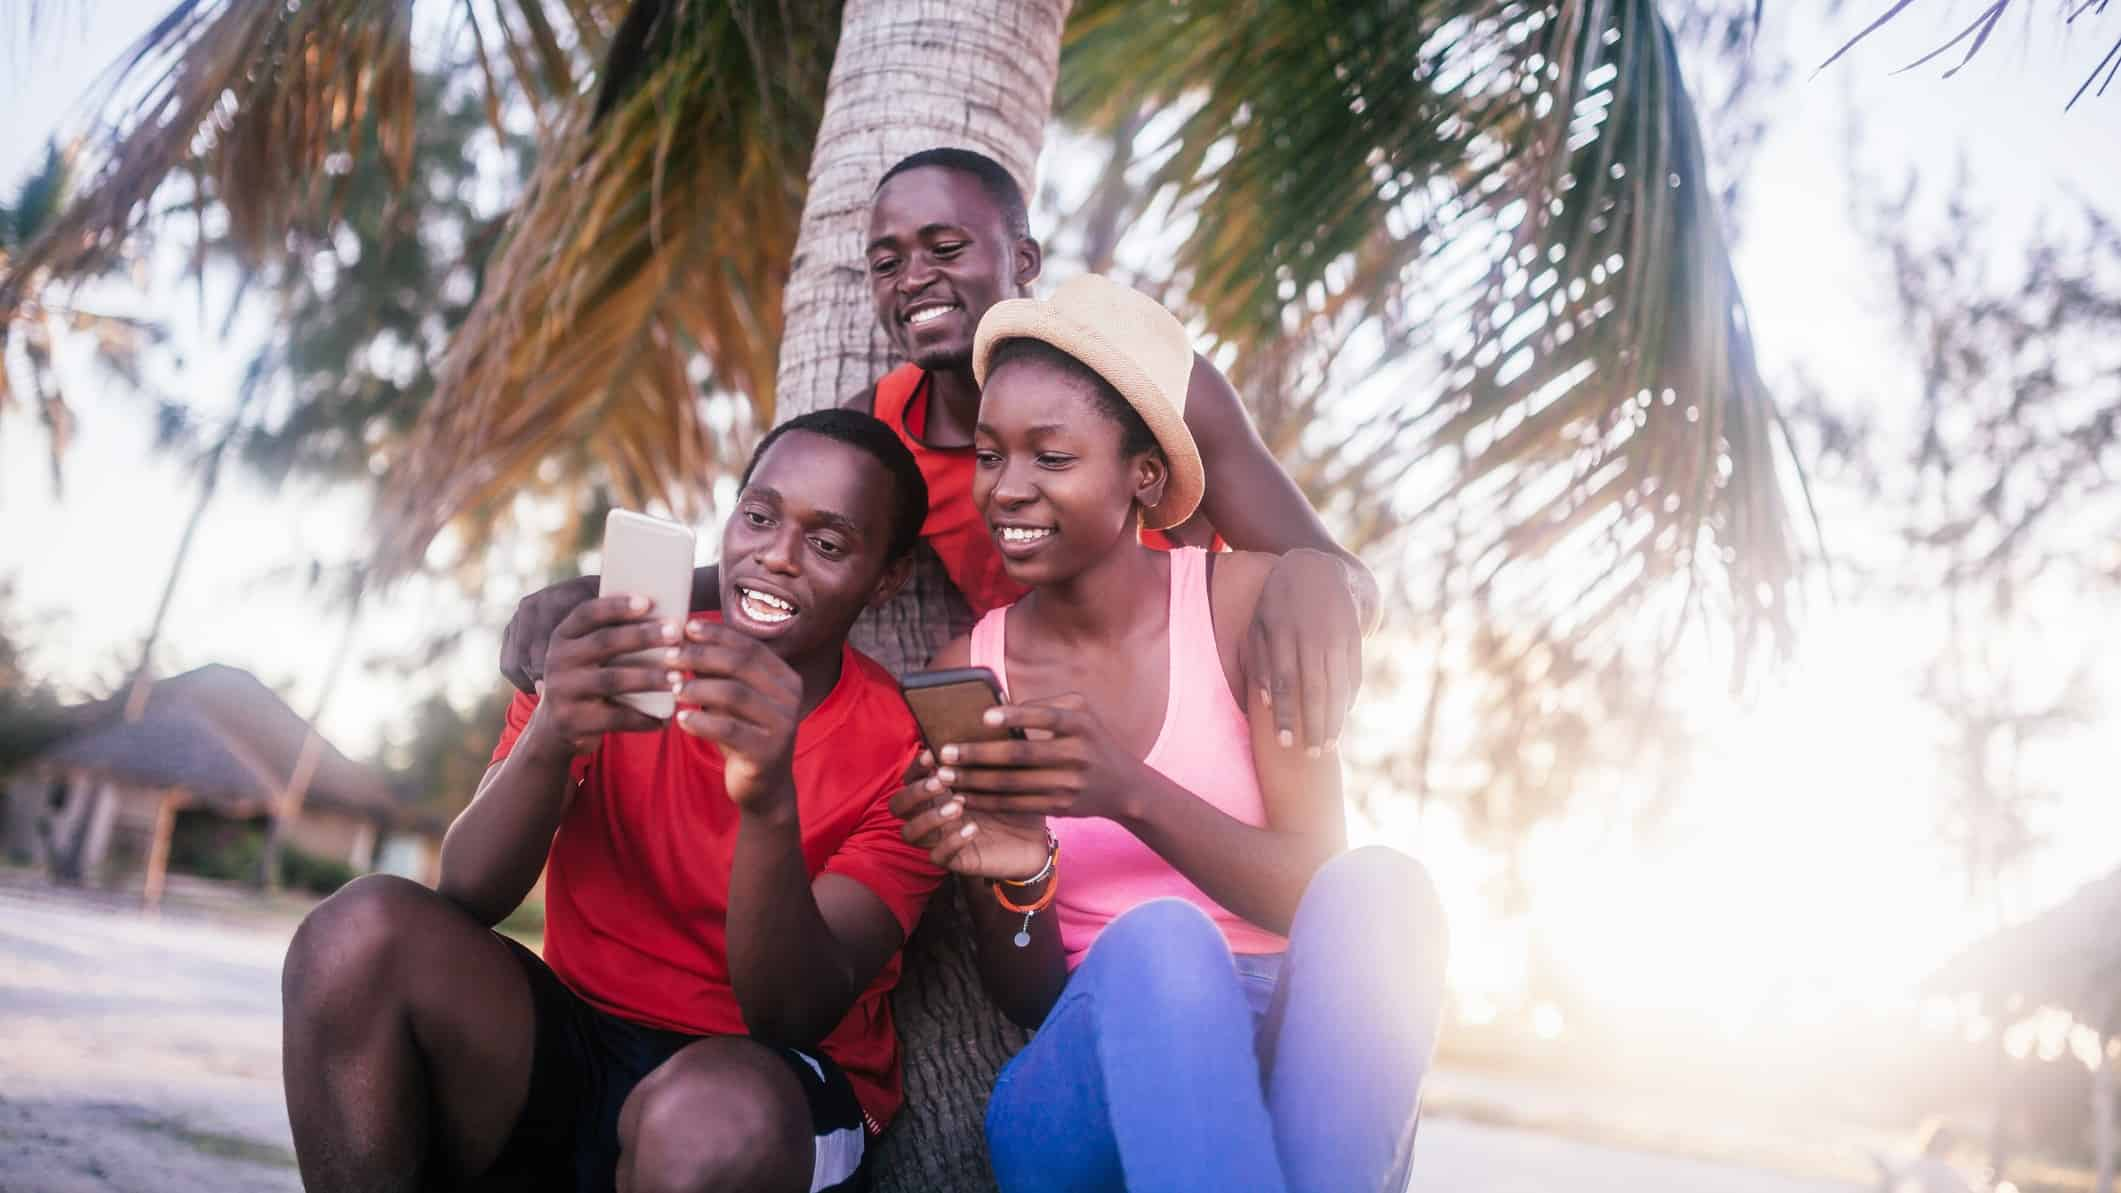 a group of islander residents look at their mobile phones under a palm tree.